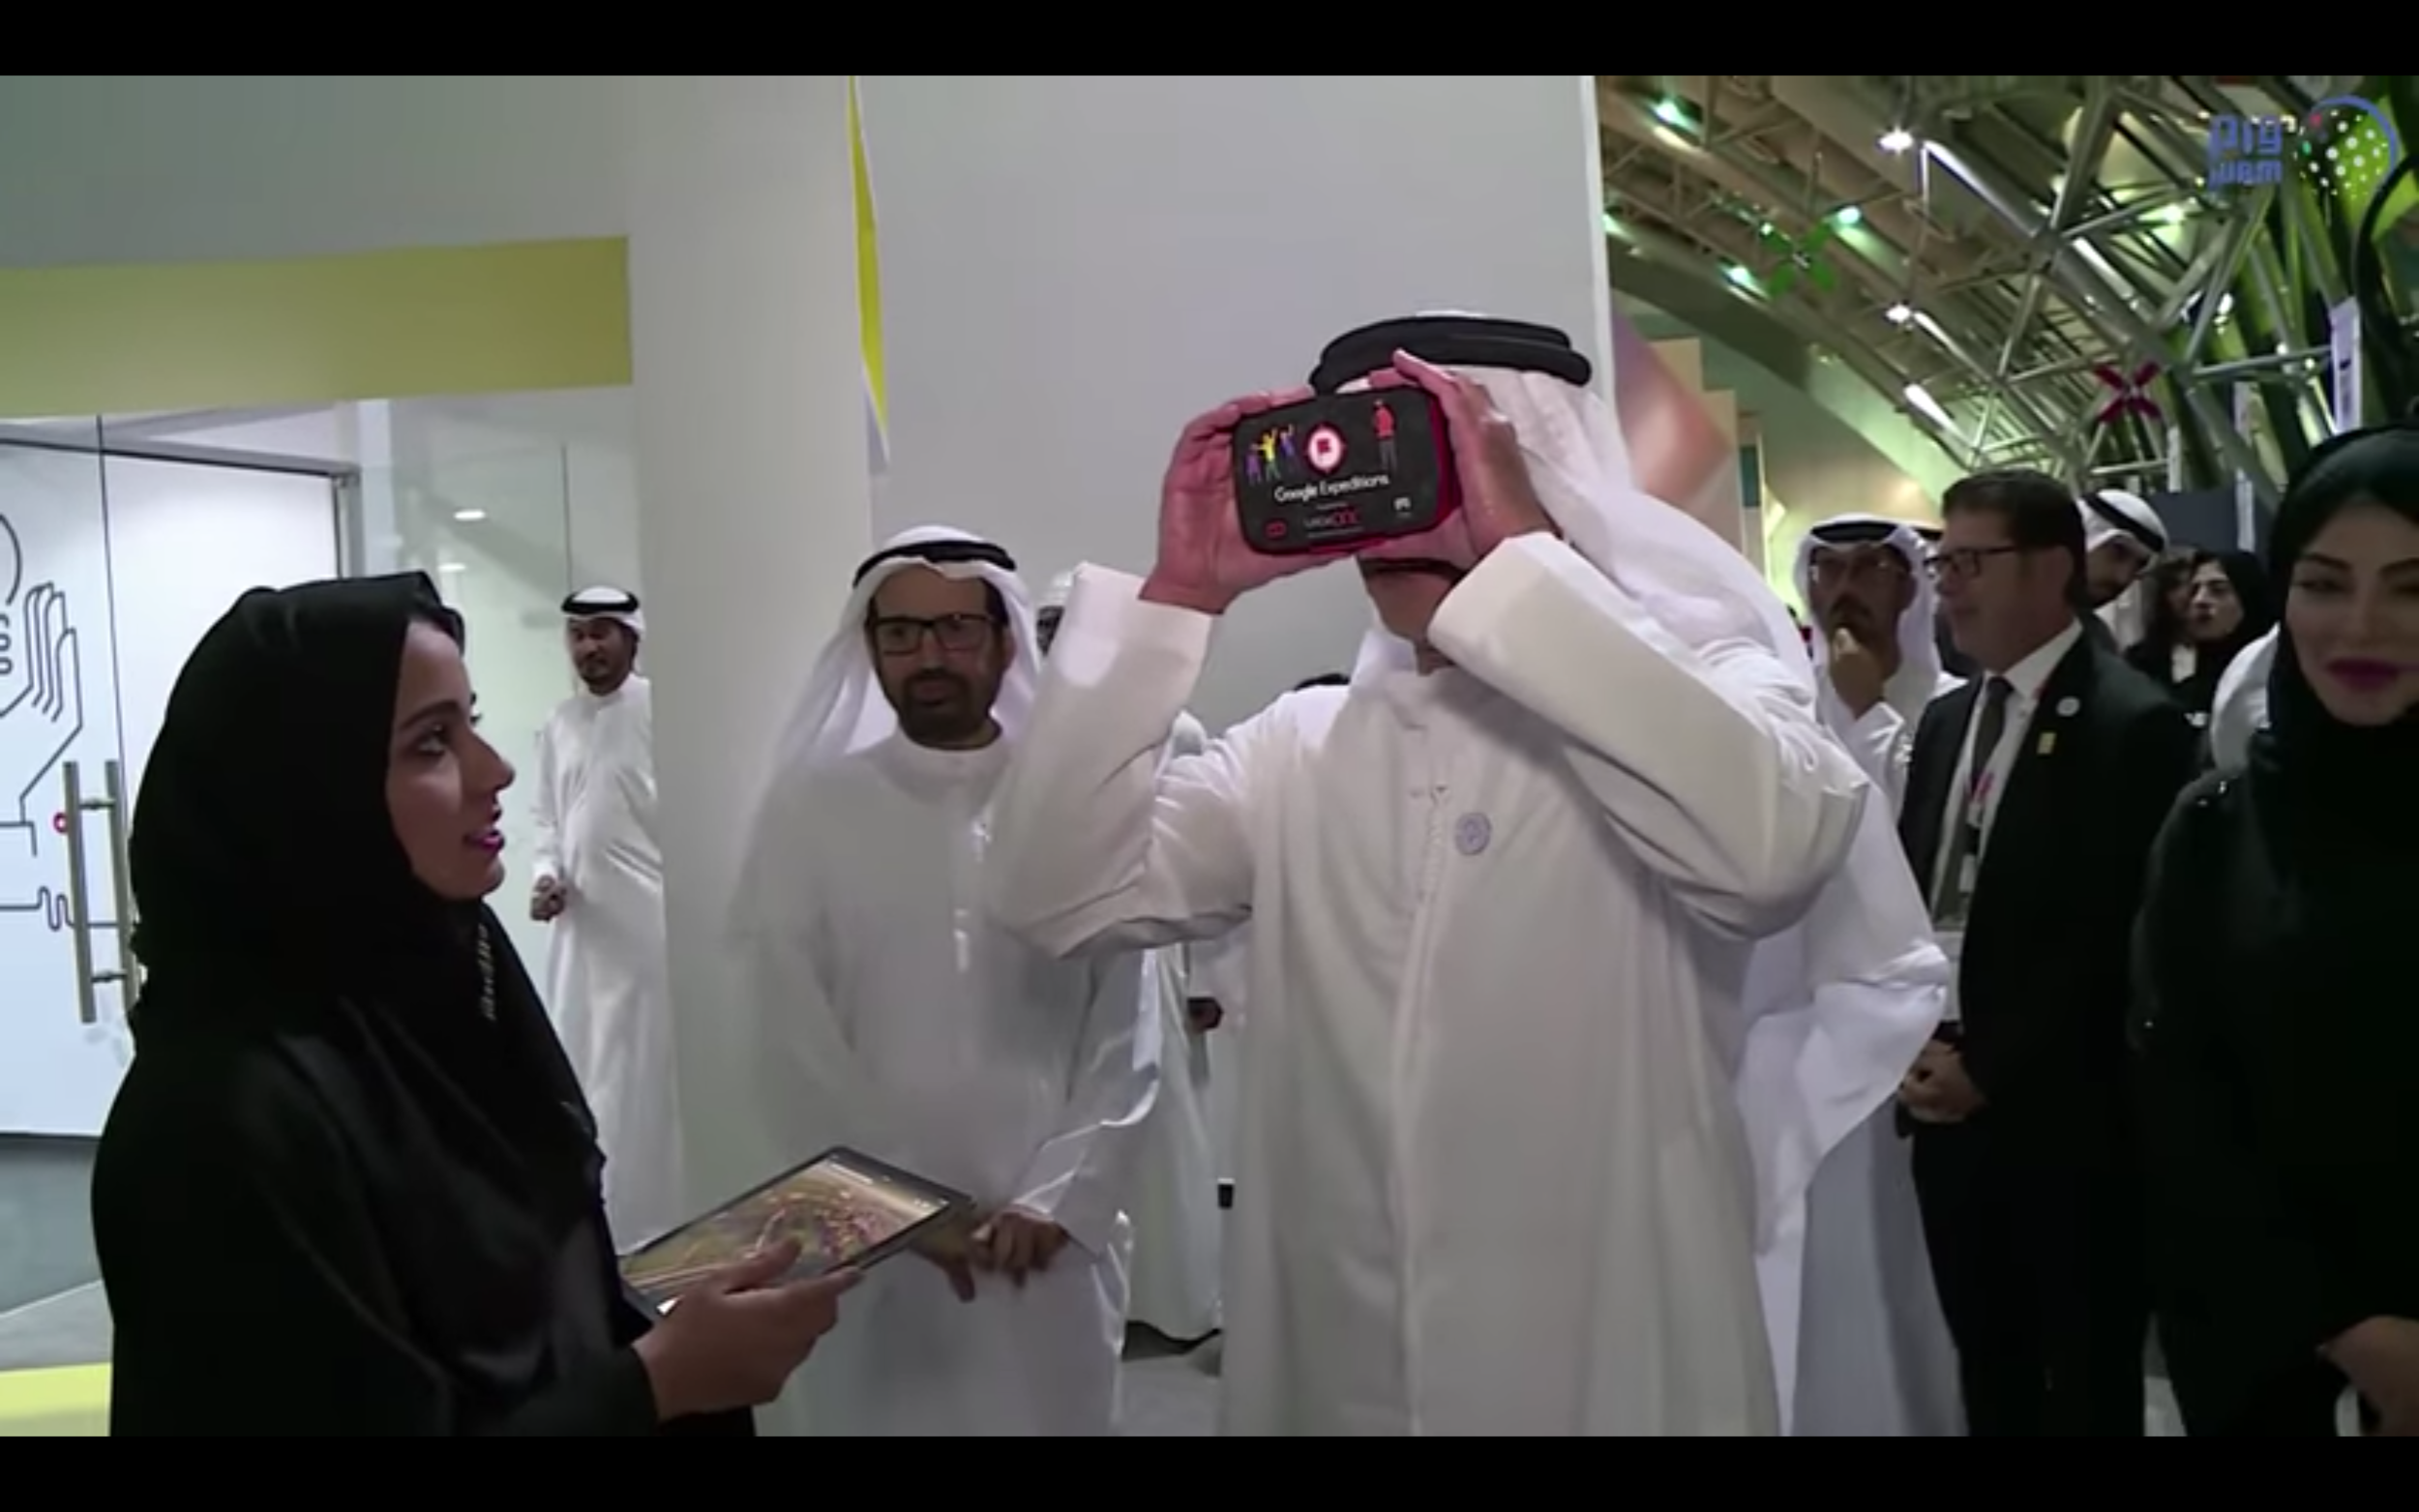 Sheikh Saif bin Zayed, Deputy Prime Minister and Minister of Interior, experiencing Google Expeditions at Google Innovation Hub Inauguration at UAE University (photo courtesy: WAM - Emirates News Agency)